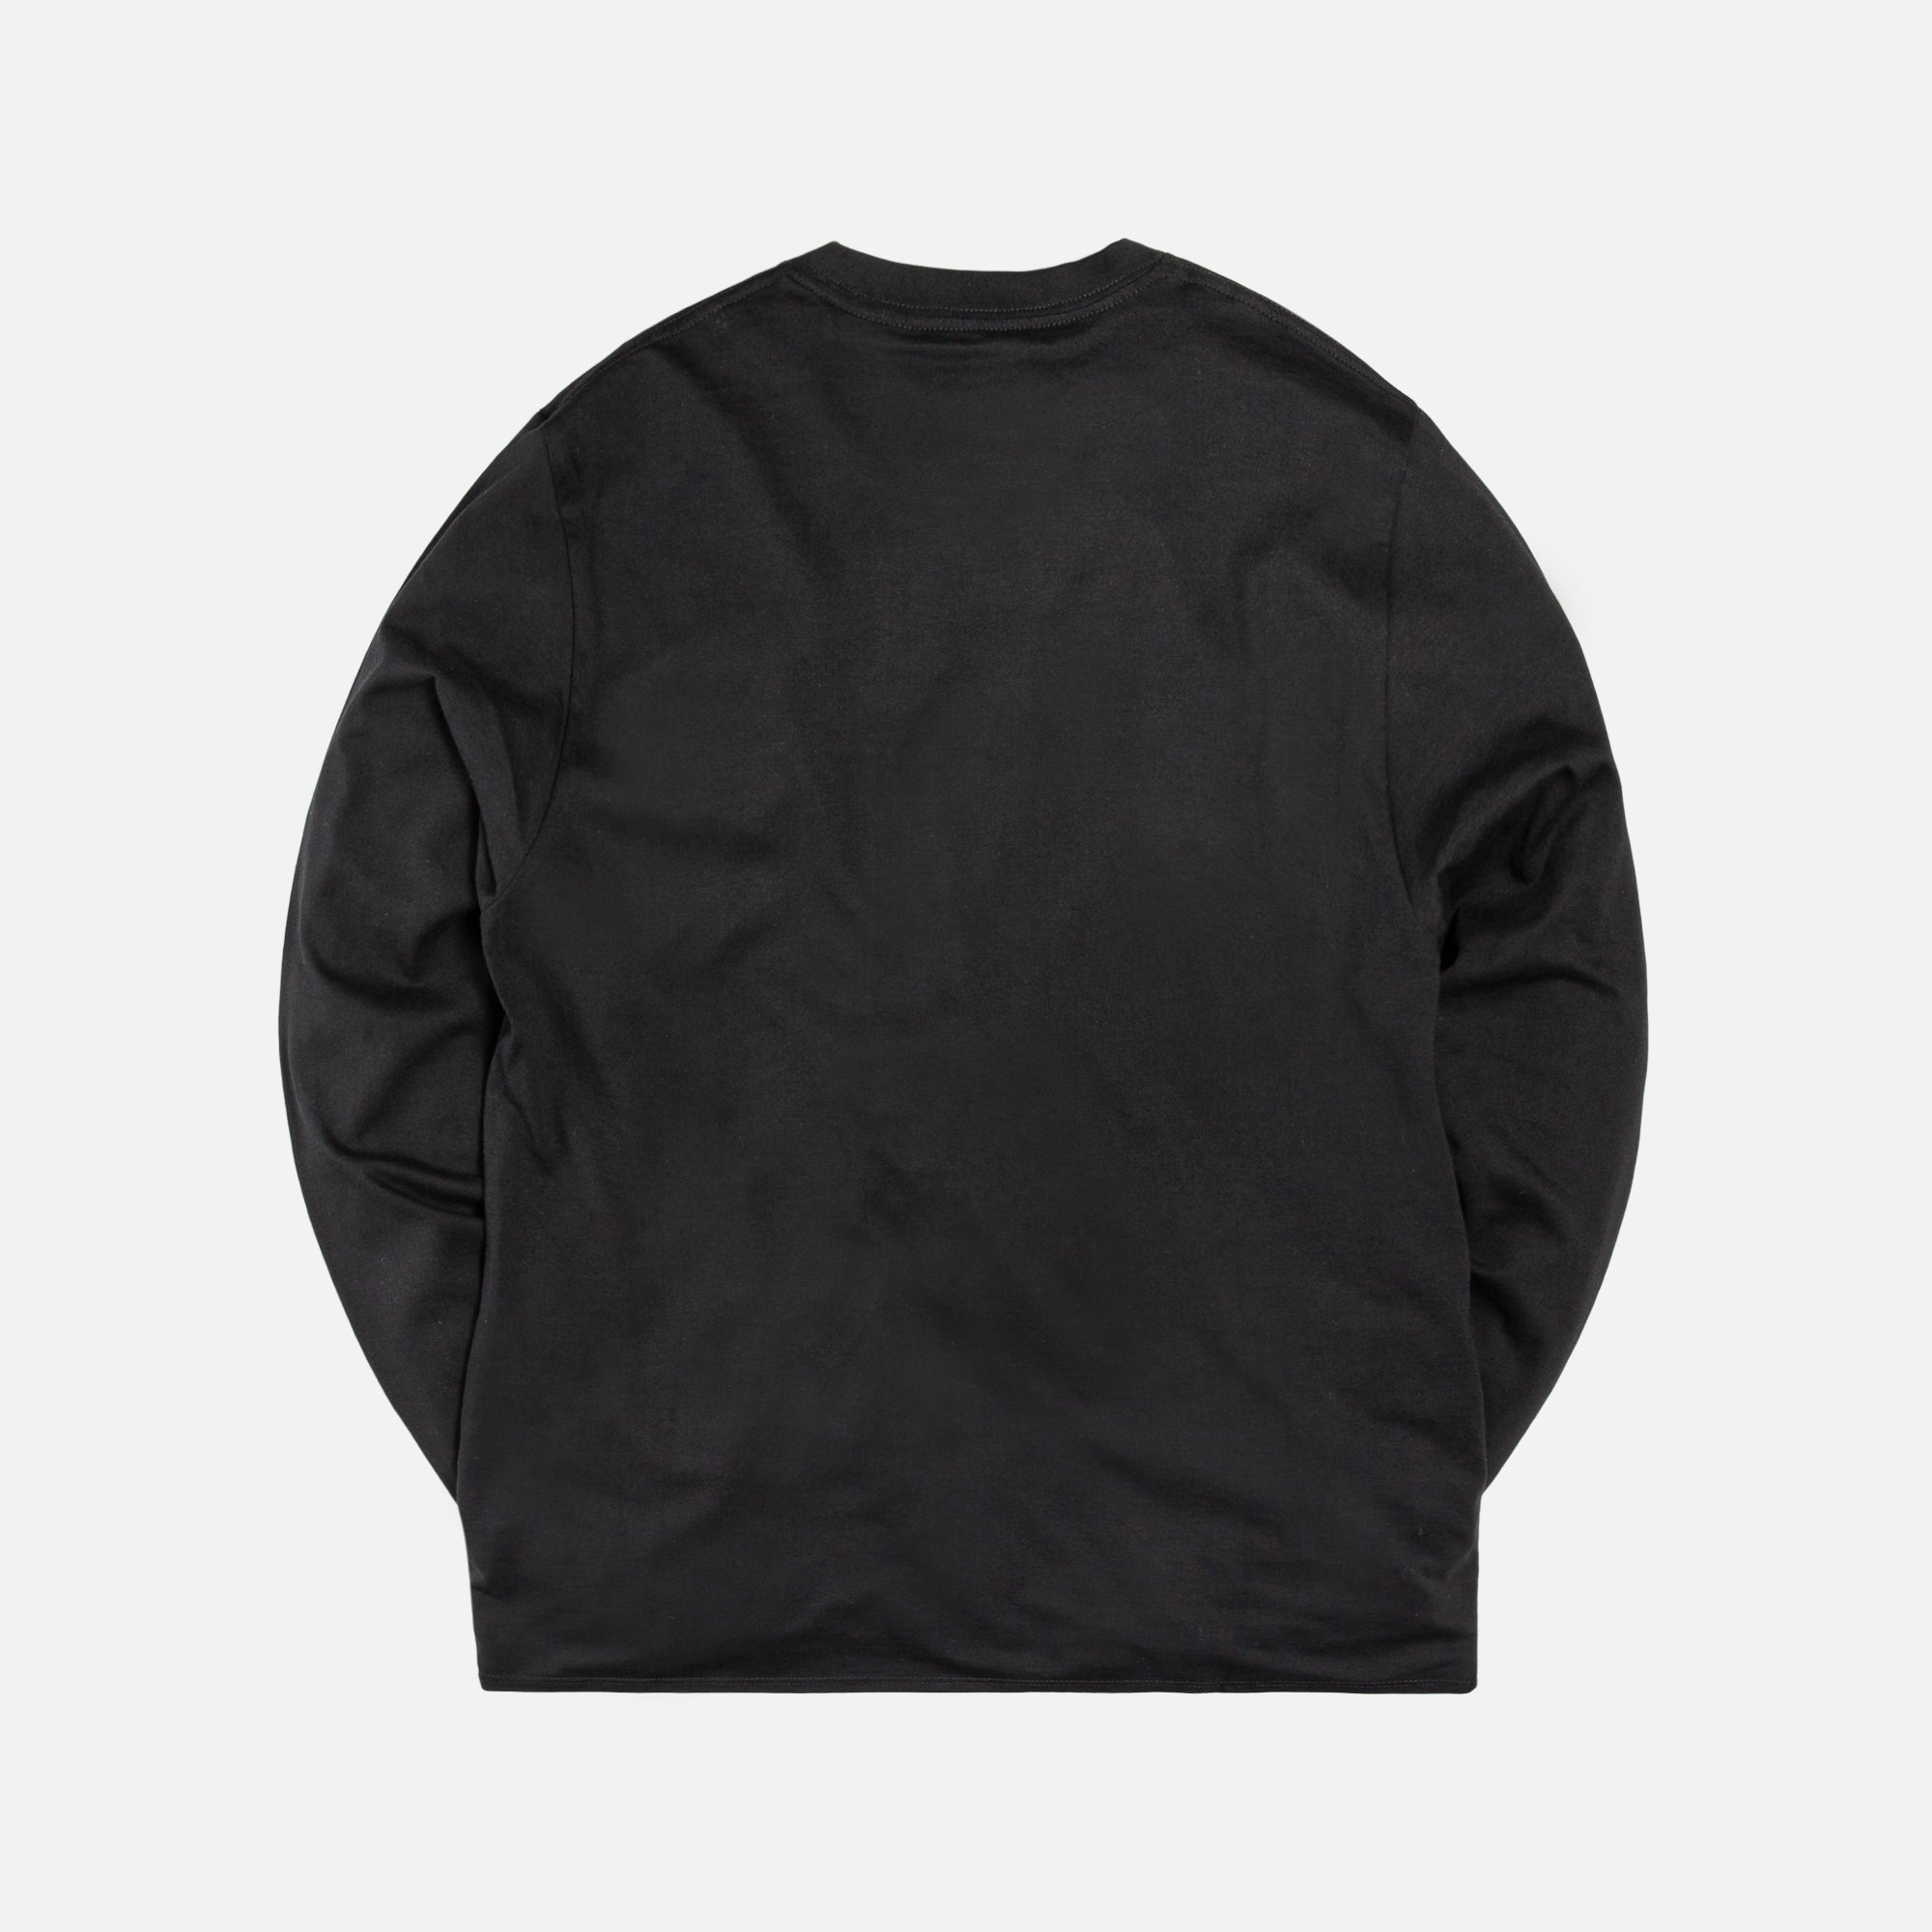 Carhartt WIP L/S Pocket Tee - Black